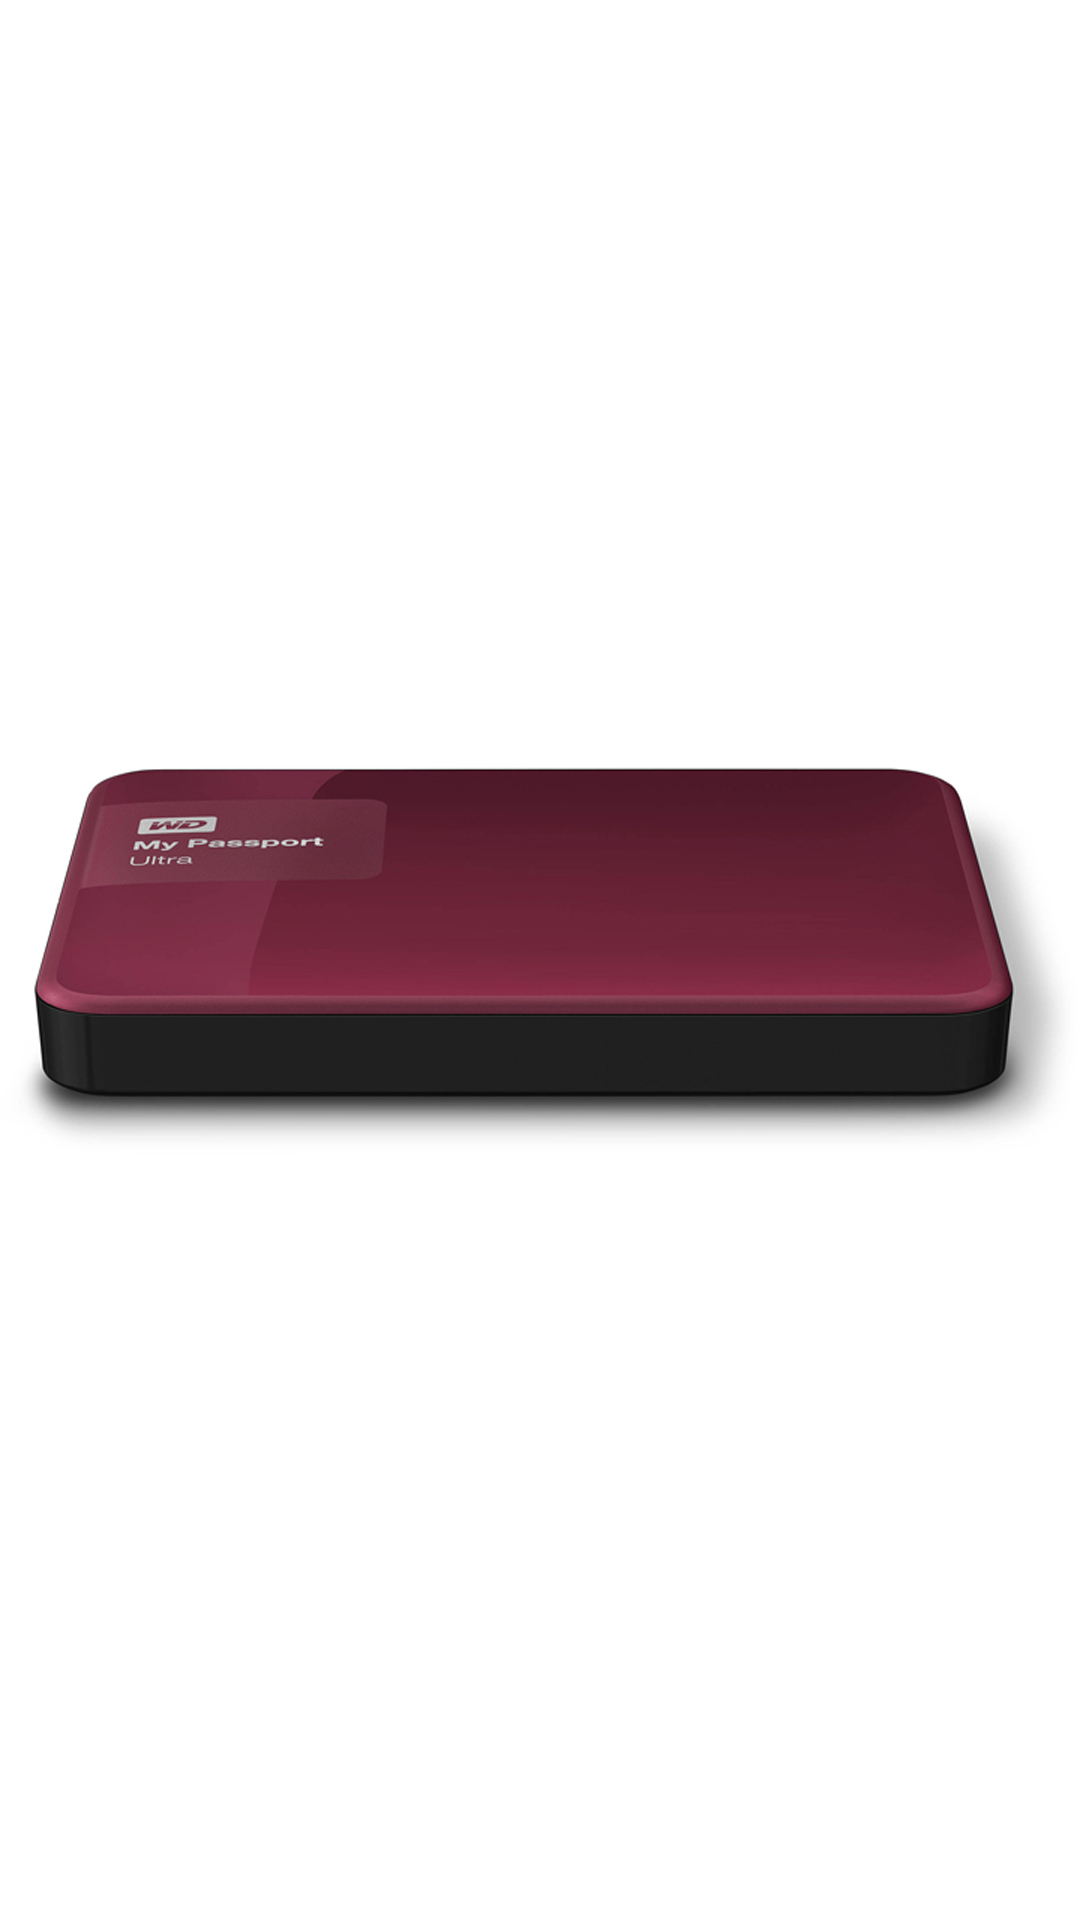 WD My Passport Ultra (WDBBKD0020BBY) 2 TB Portable External Hard Drive (Berry)